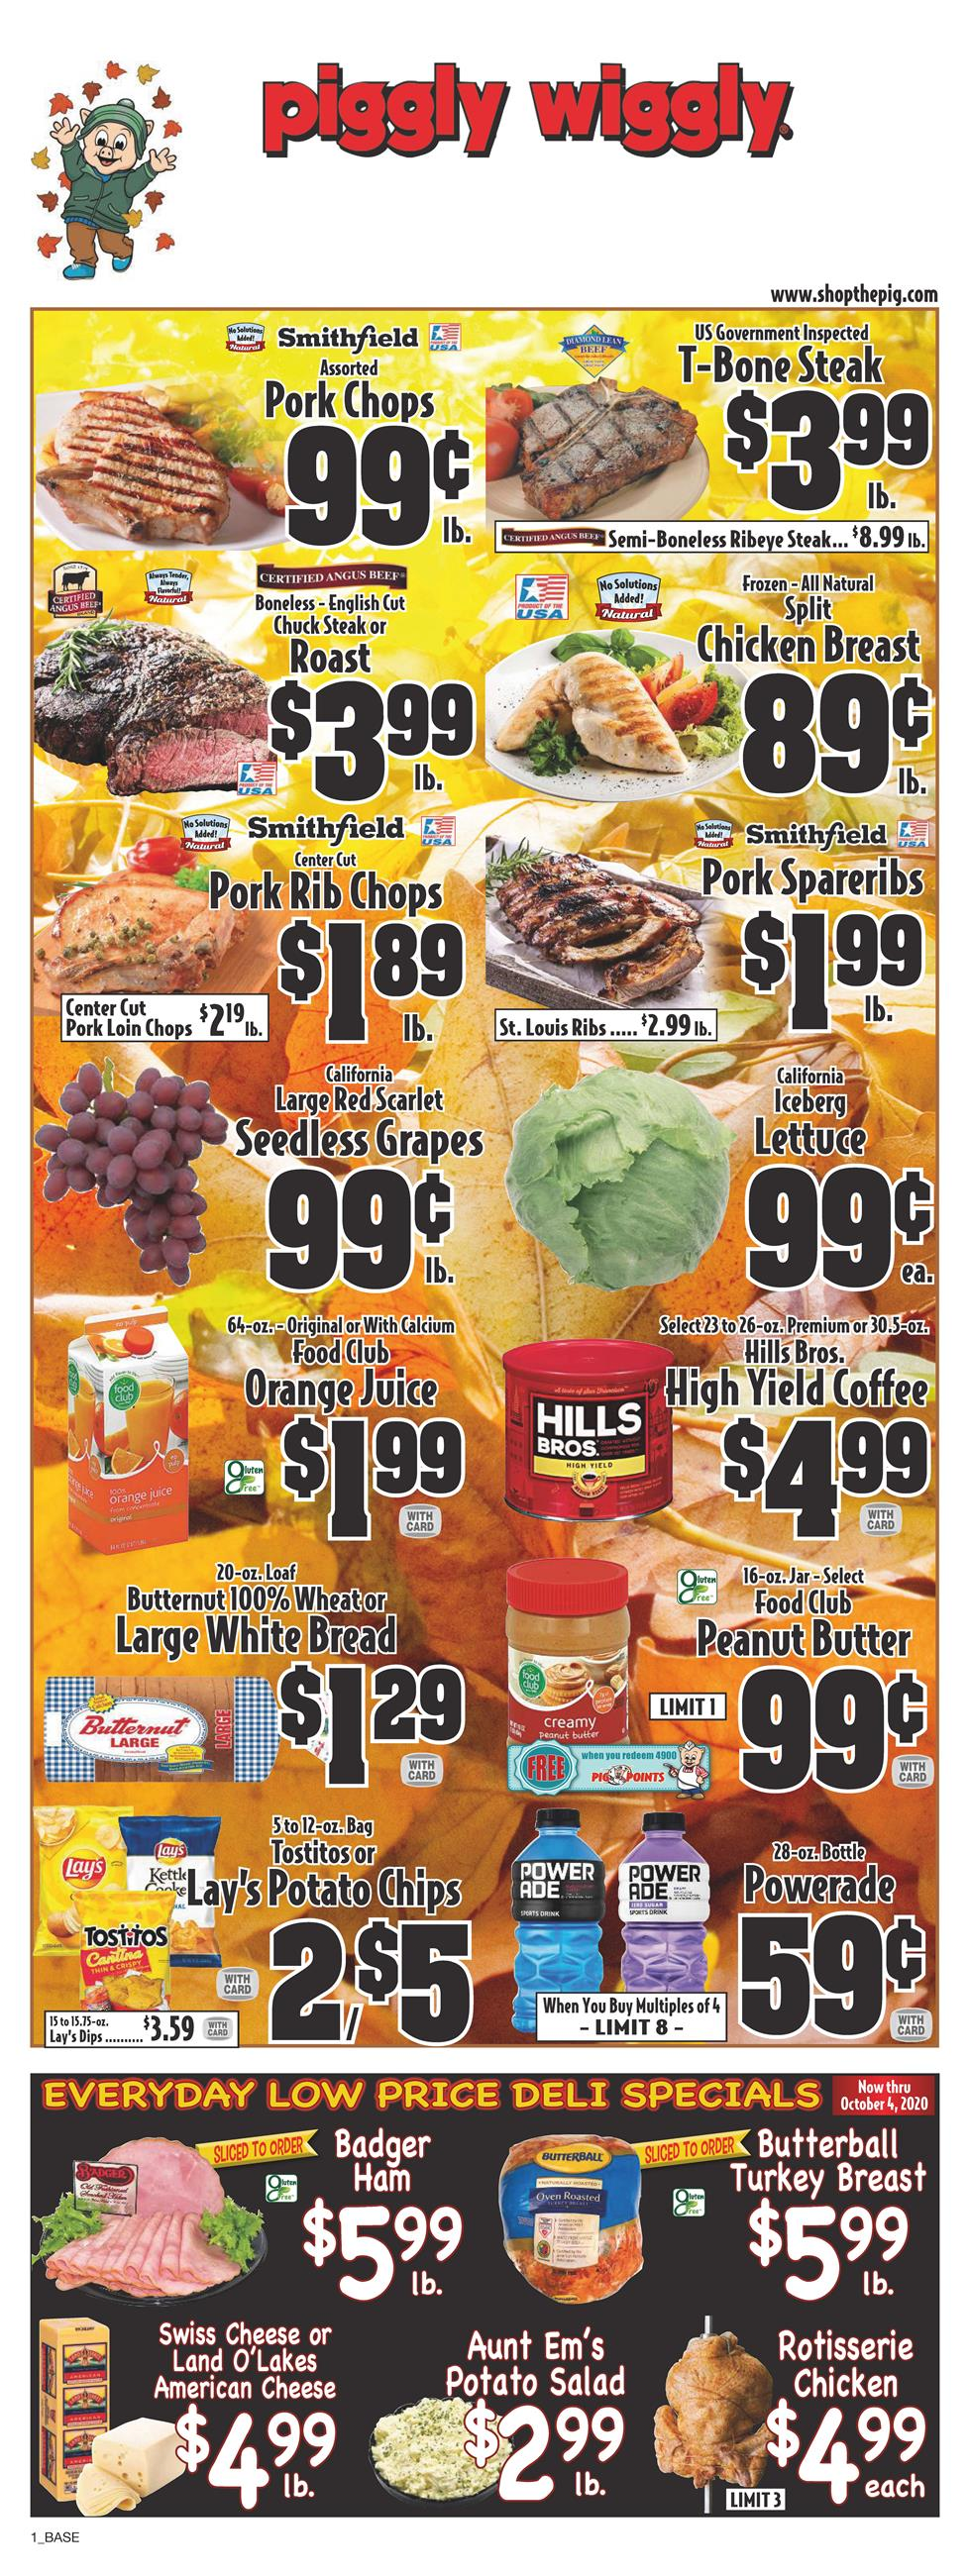 piggly wiggly september weekly ad valid from sep 16 22 2020